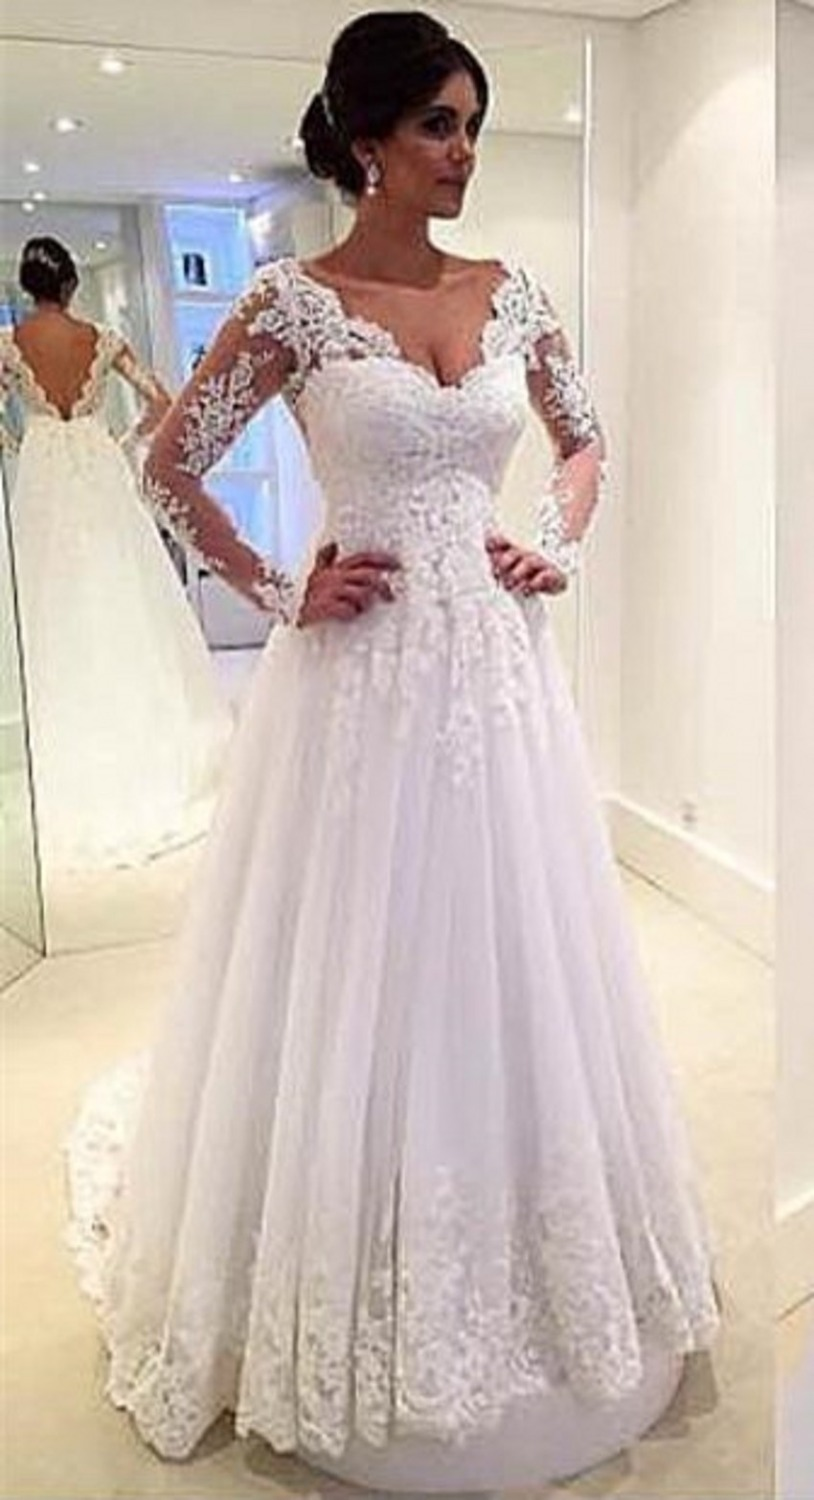 696a84e6bf5 New Style White Wedding Dress Lace Long Sleeve Sexy Backless Bride